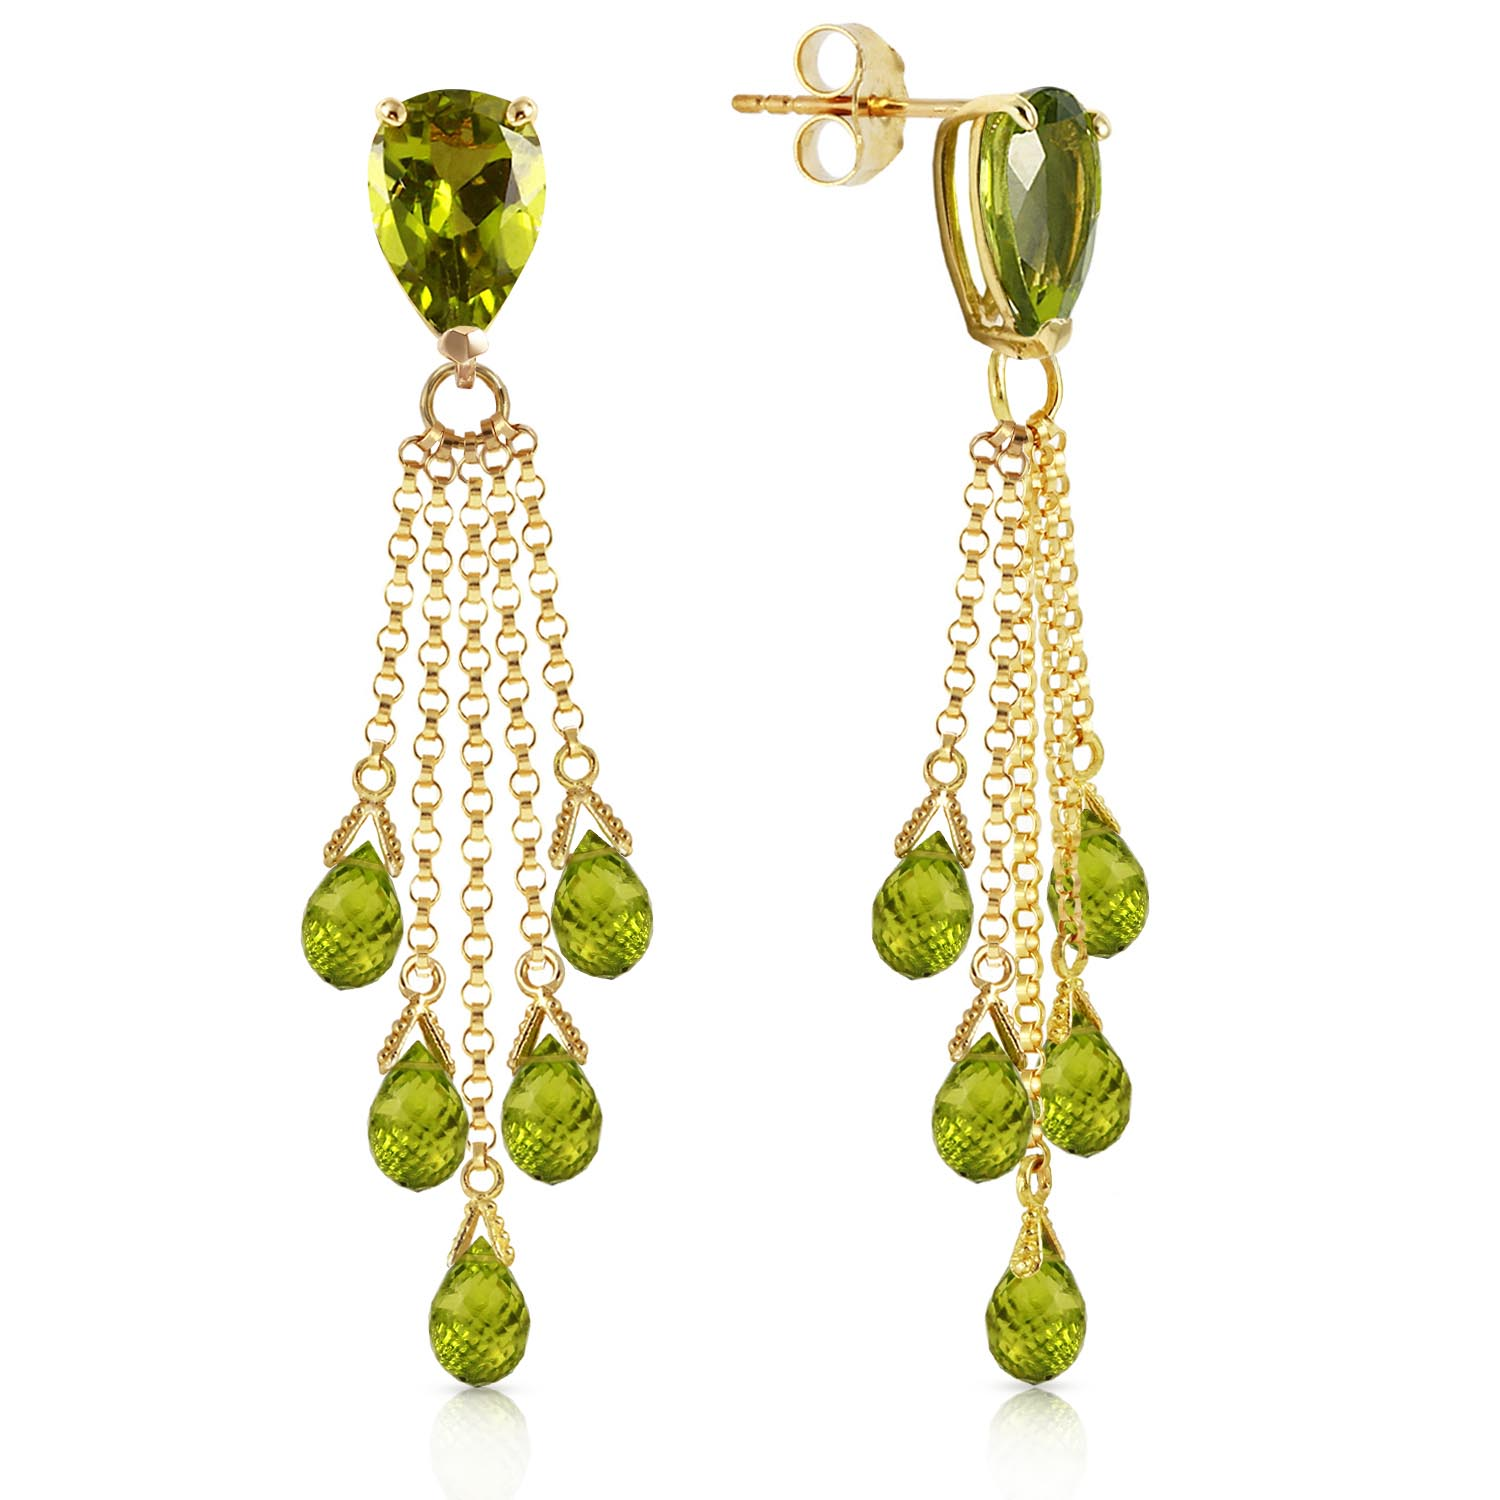 Peridot Comet Tail Drop Earrings 15.5ctw in 9ct Gold